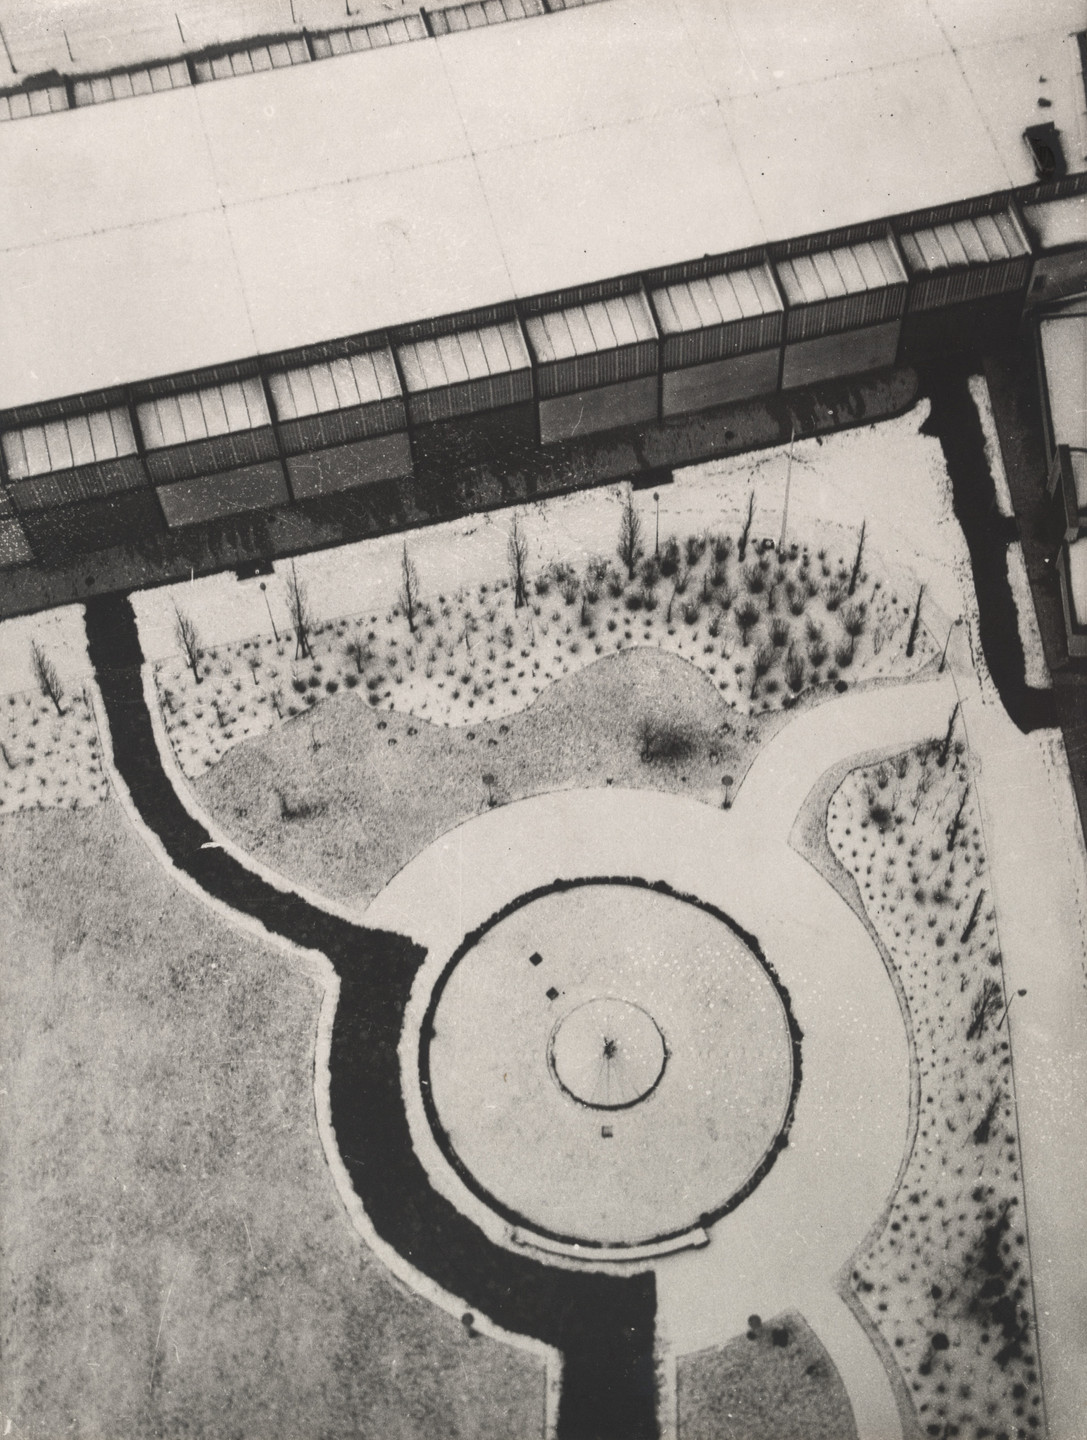 László Moholy-Nagy. From the Radio Tower, Berlin. 1928